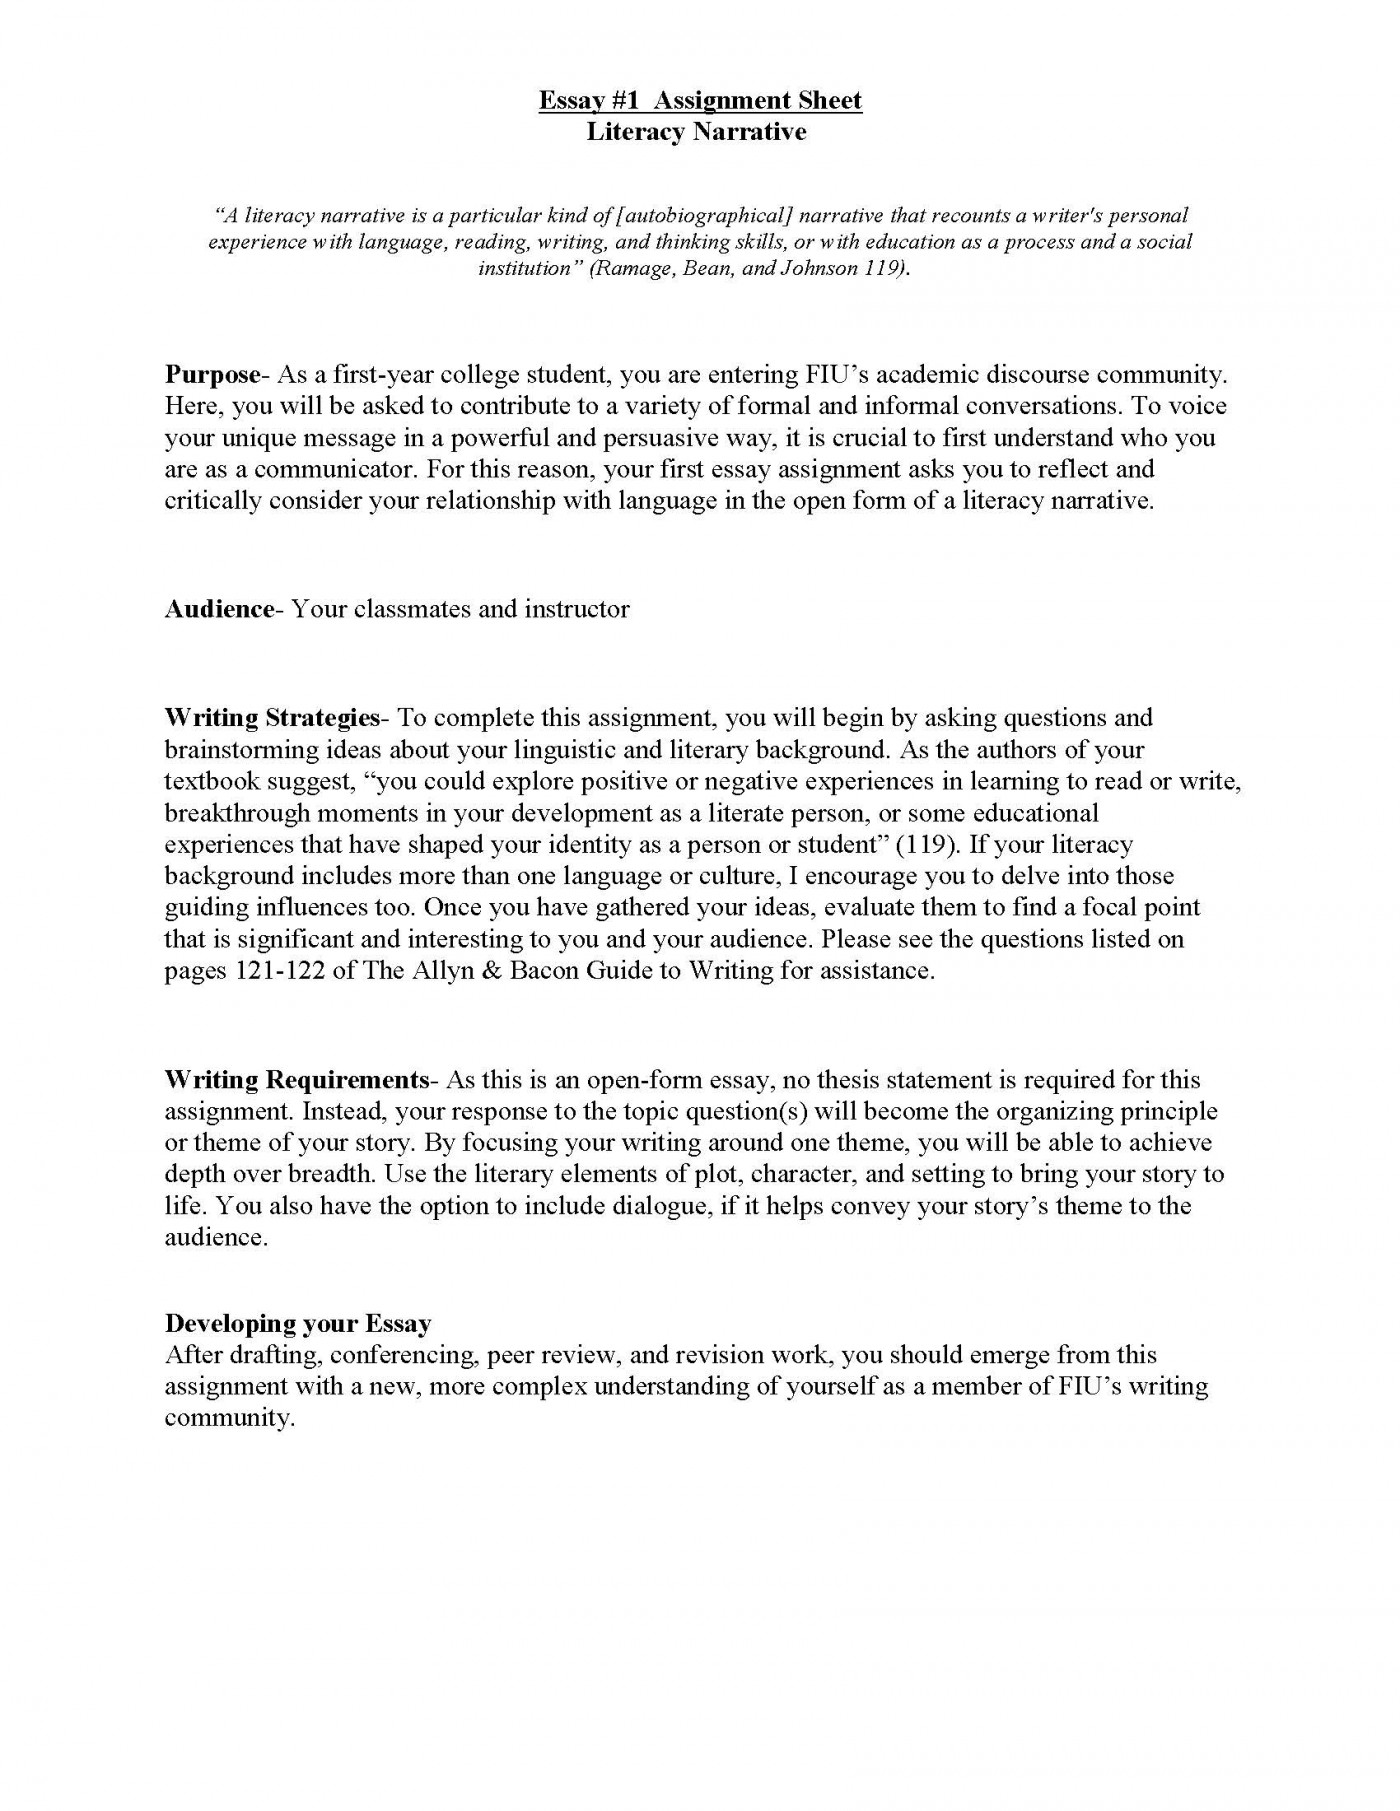 017 Literacy Narrative Unit Assignment Spring 2012 Page 1s Of Essays Essay Rare Examples Writing College For Students High School 1400